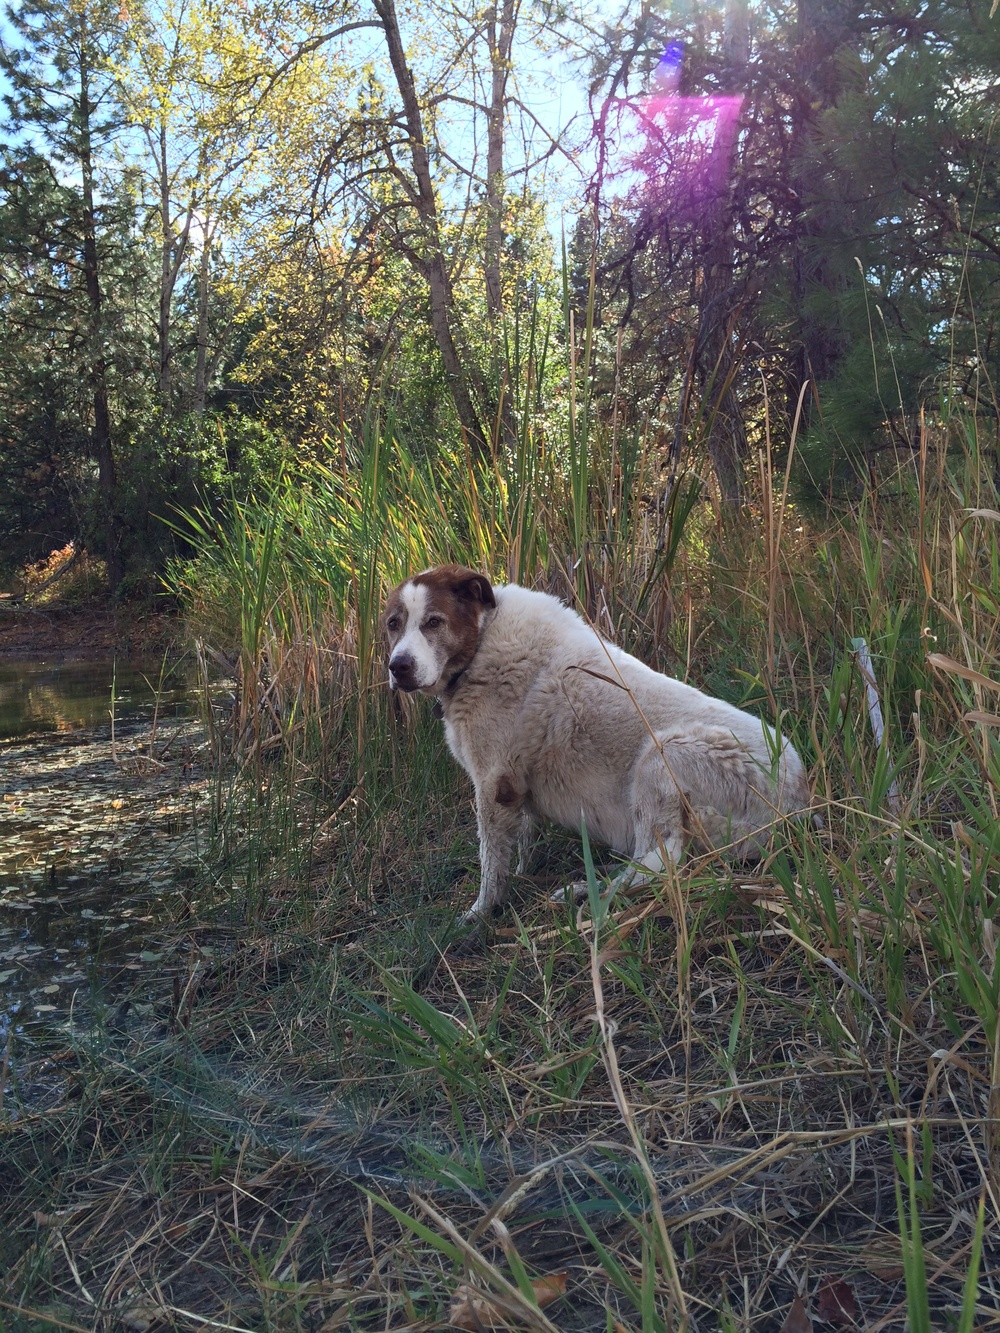 Woody the Dog relaxes next to the Pond.  1 October 2014.